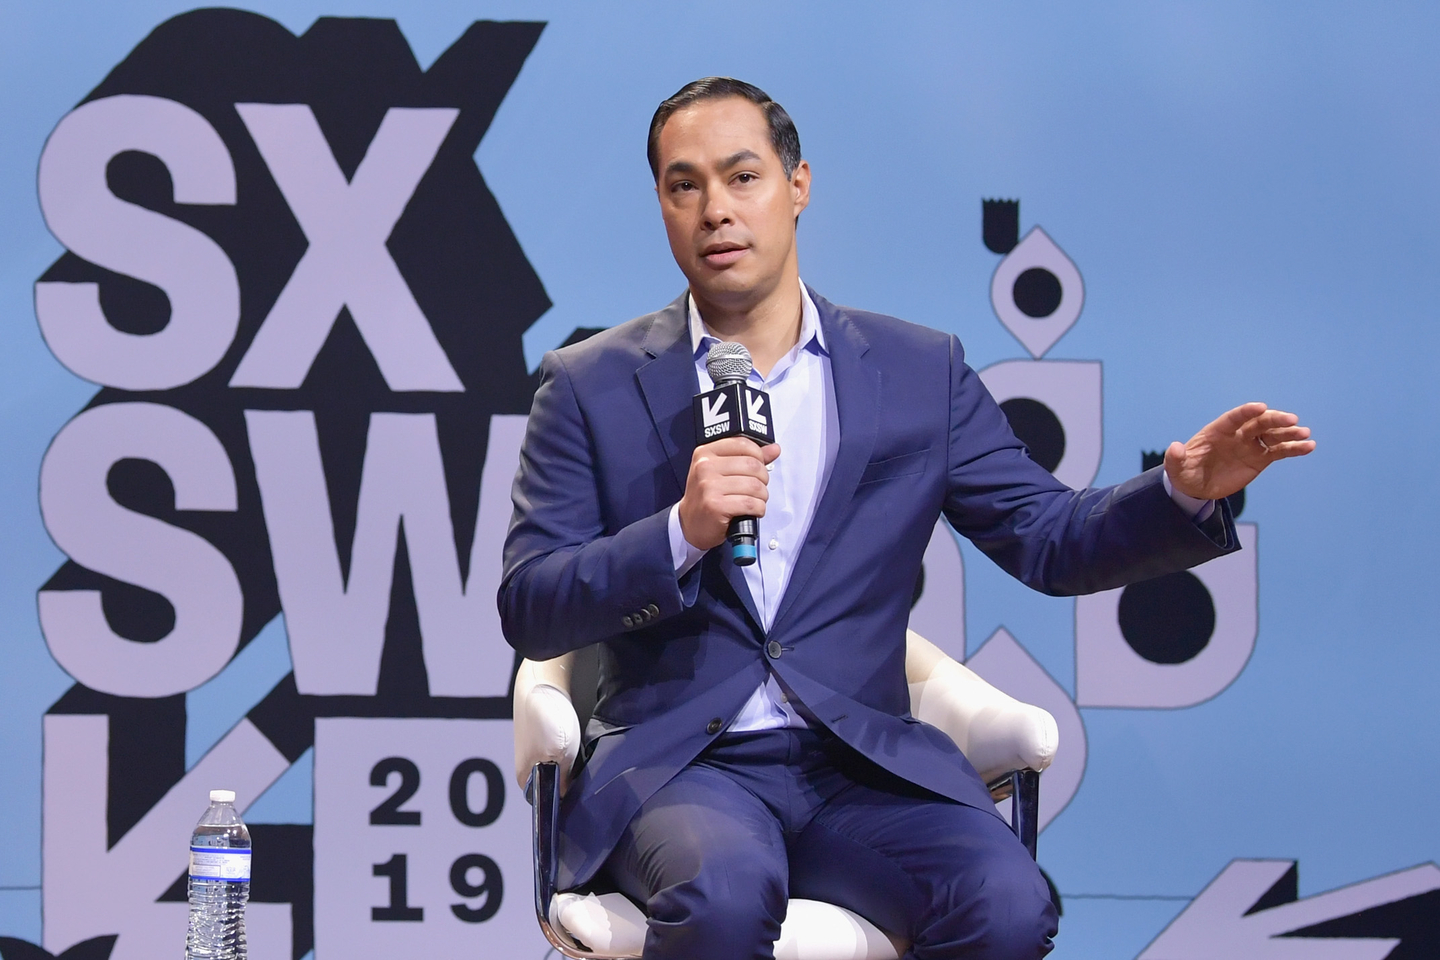 Former U.S. Secretary of Housing & Urban Development Julián Castro speaks onstage at Conversations About America's Future at Austin City Limits Live at the Moody Theater.